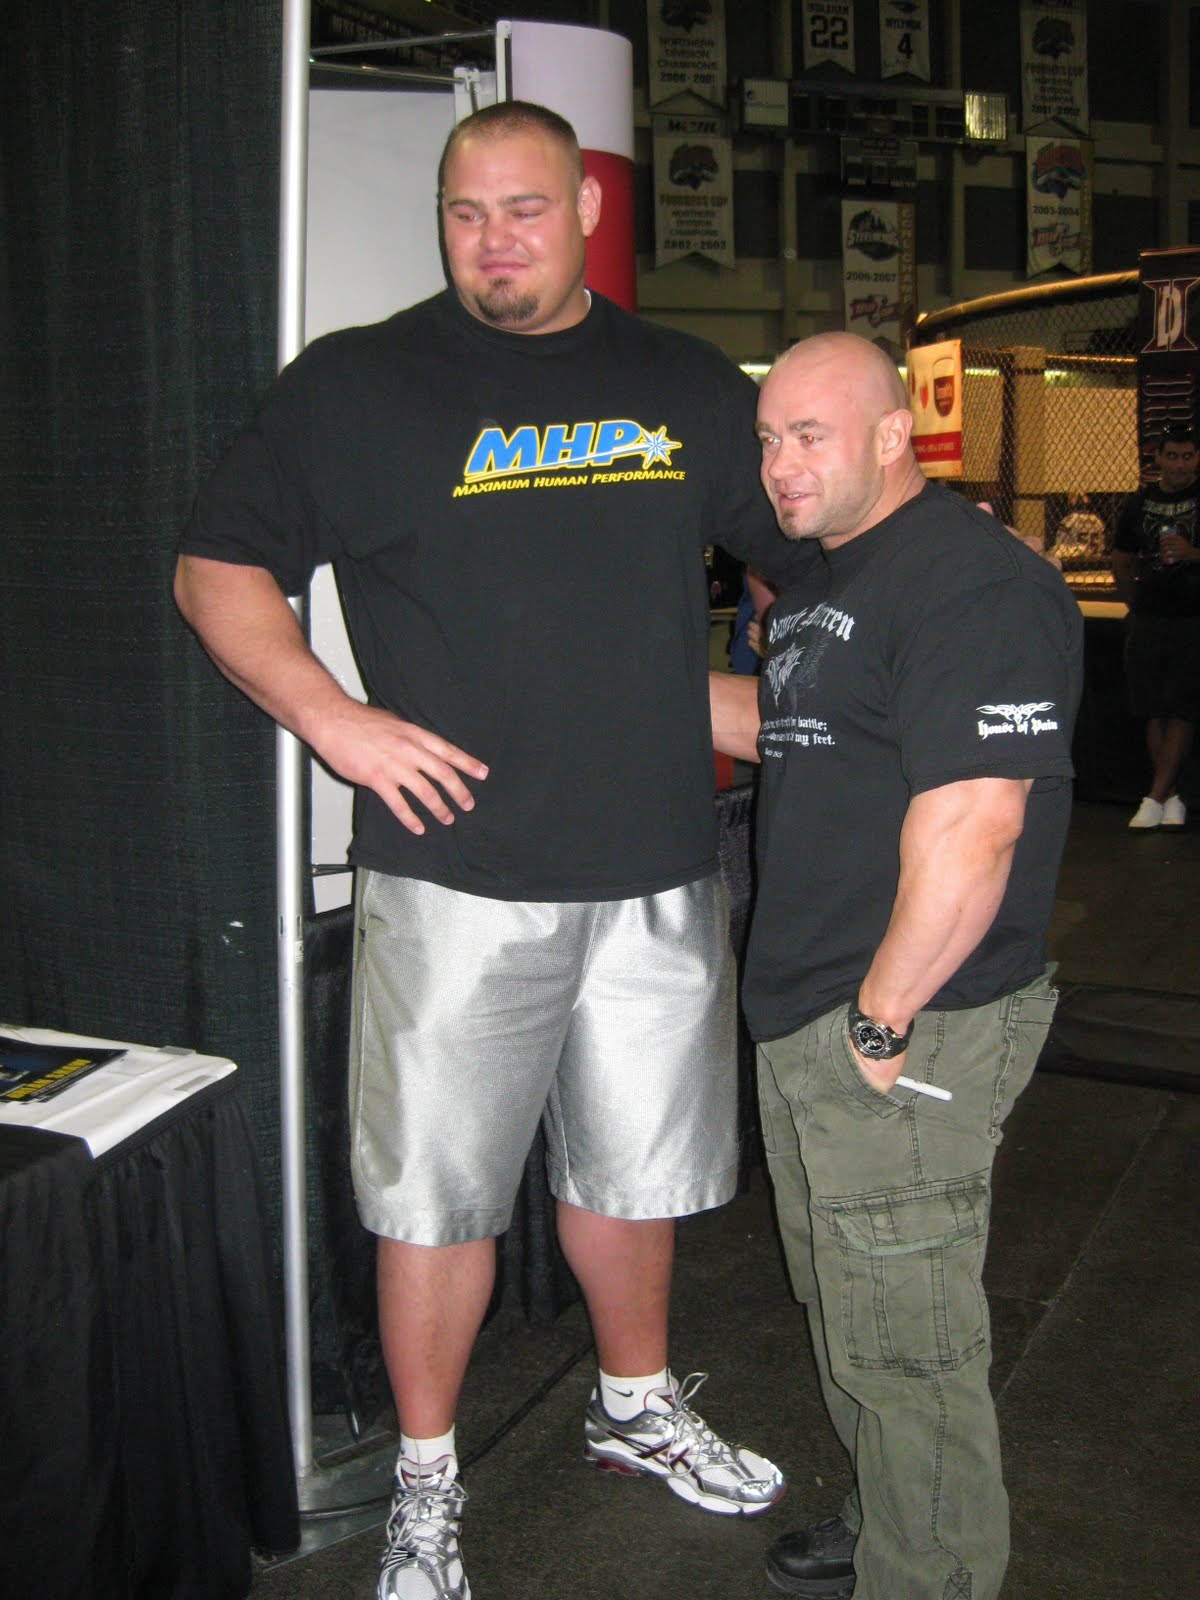 Article about Brian Shaw and strongman competitions